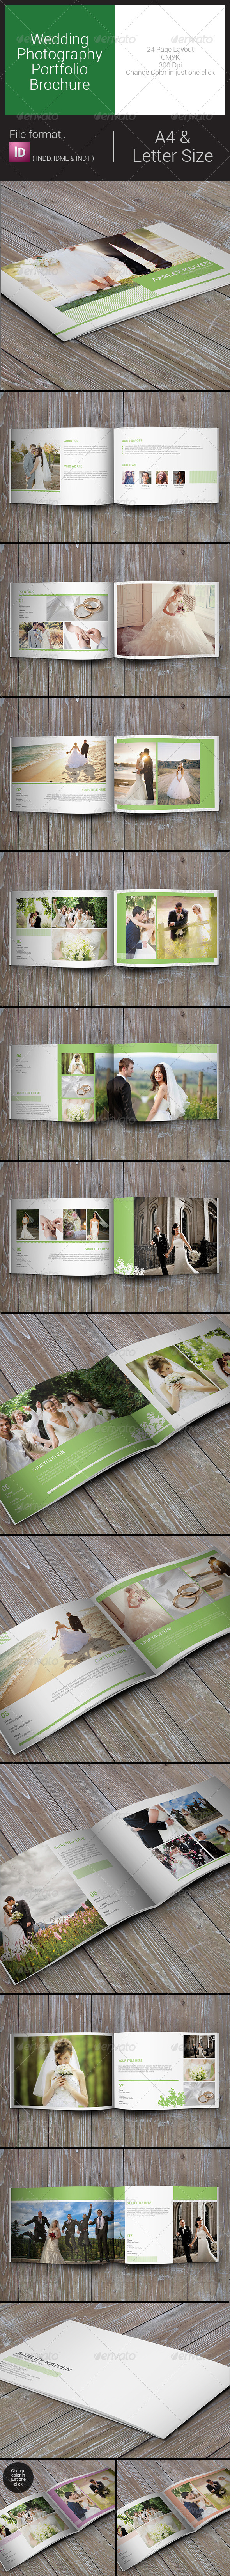 GraphicRiver Wedding Photography Portfolio Brochure 7958655